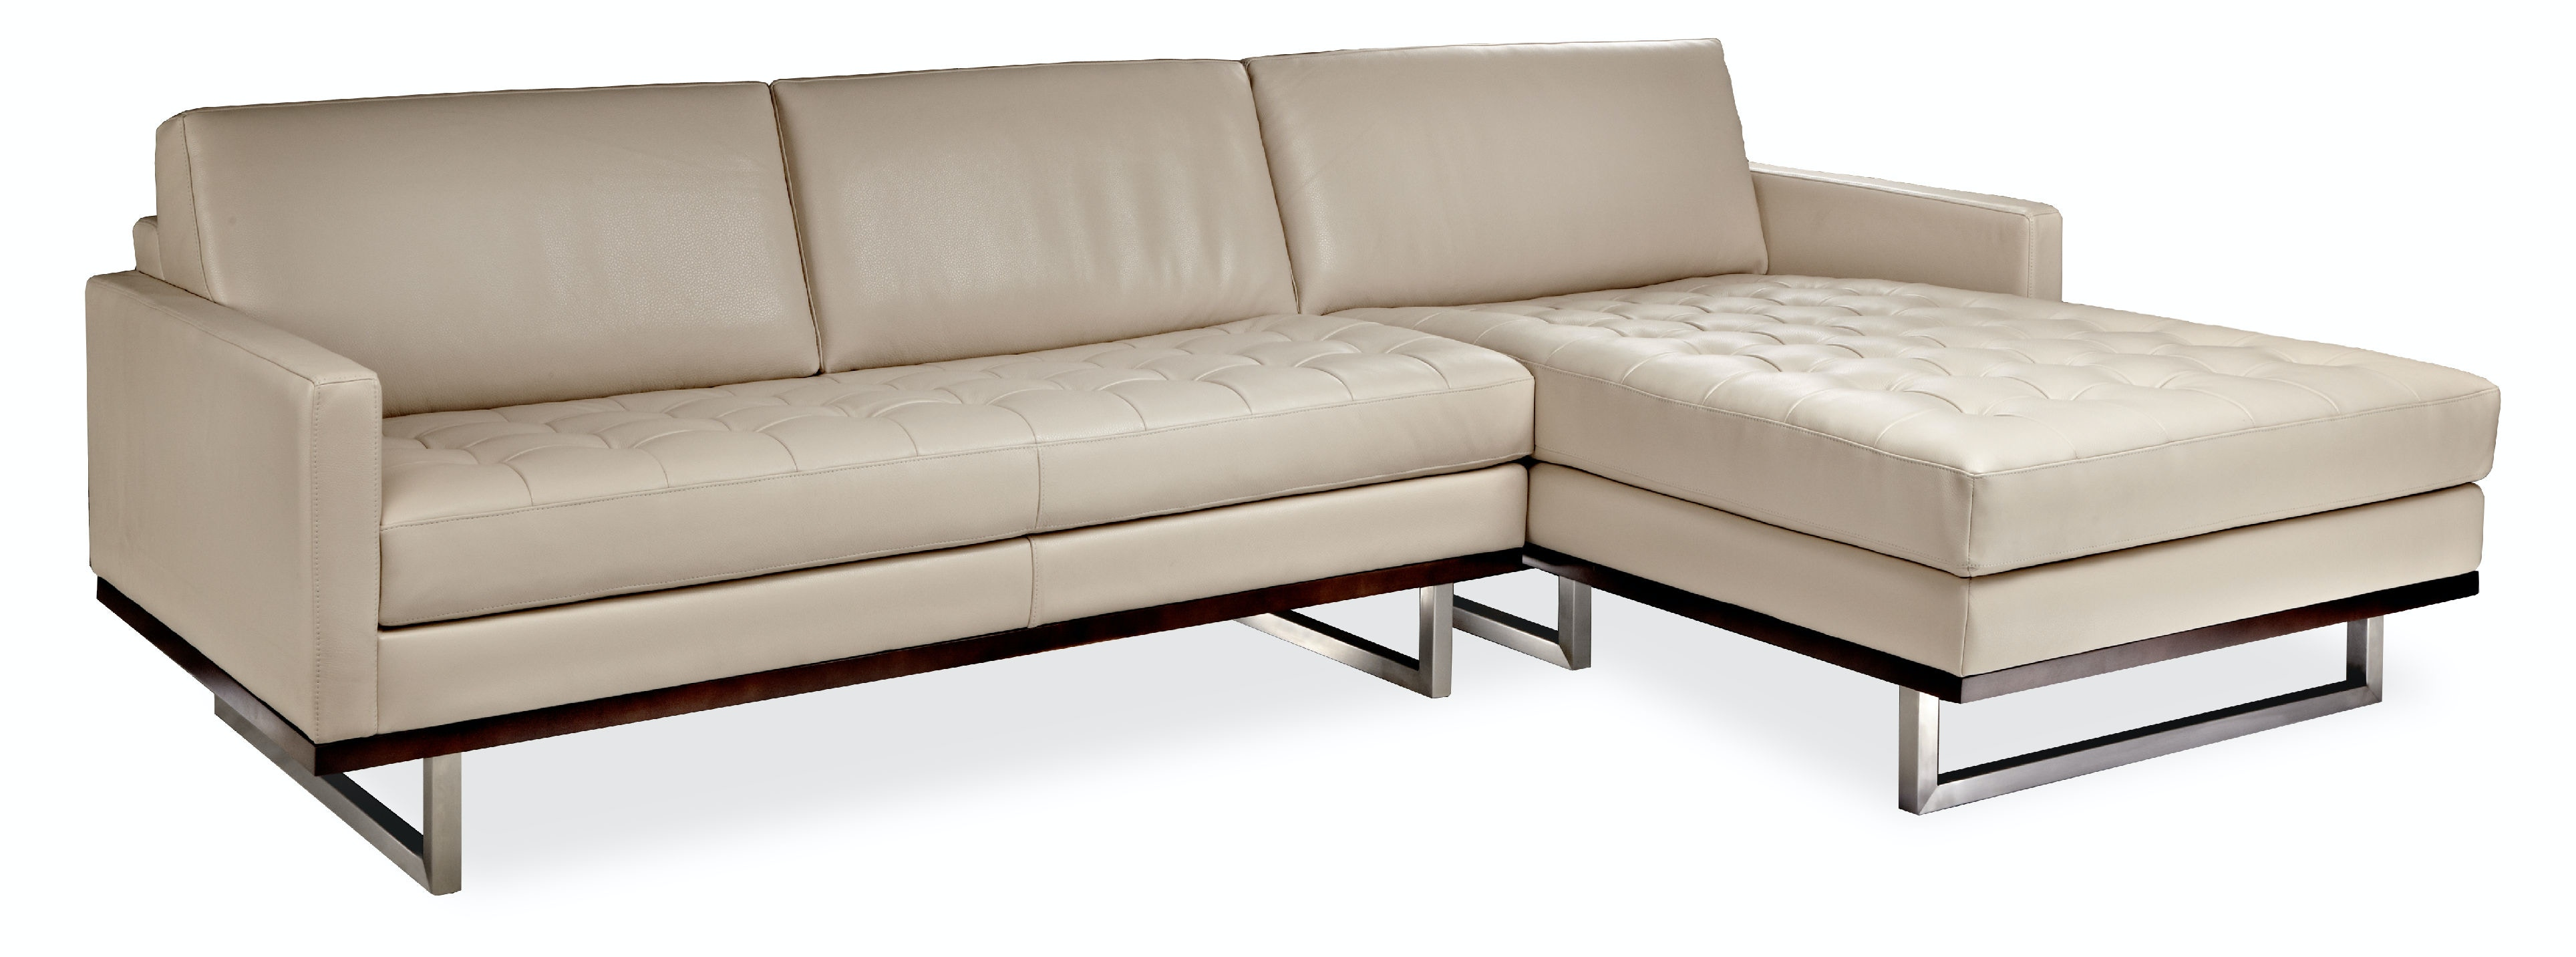 American leather living room tristan sectional bartlett for Bartlett caramel left corner chaise sectional